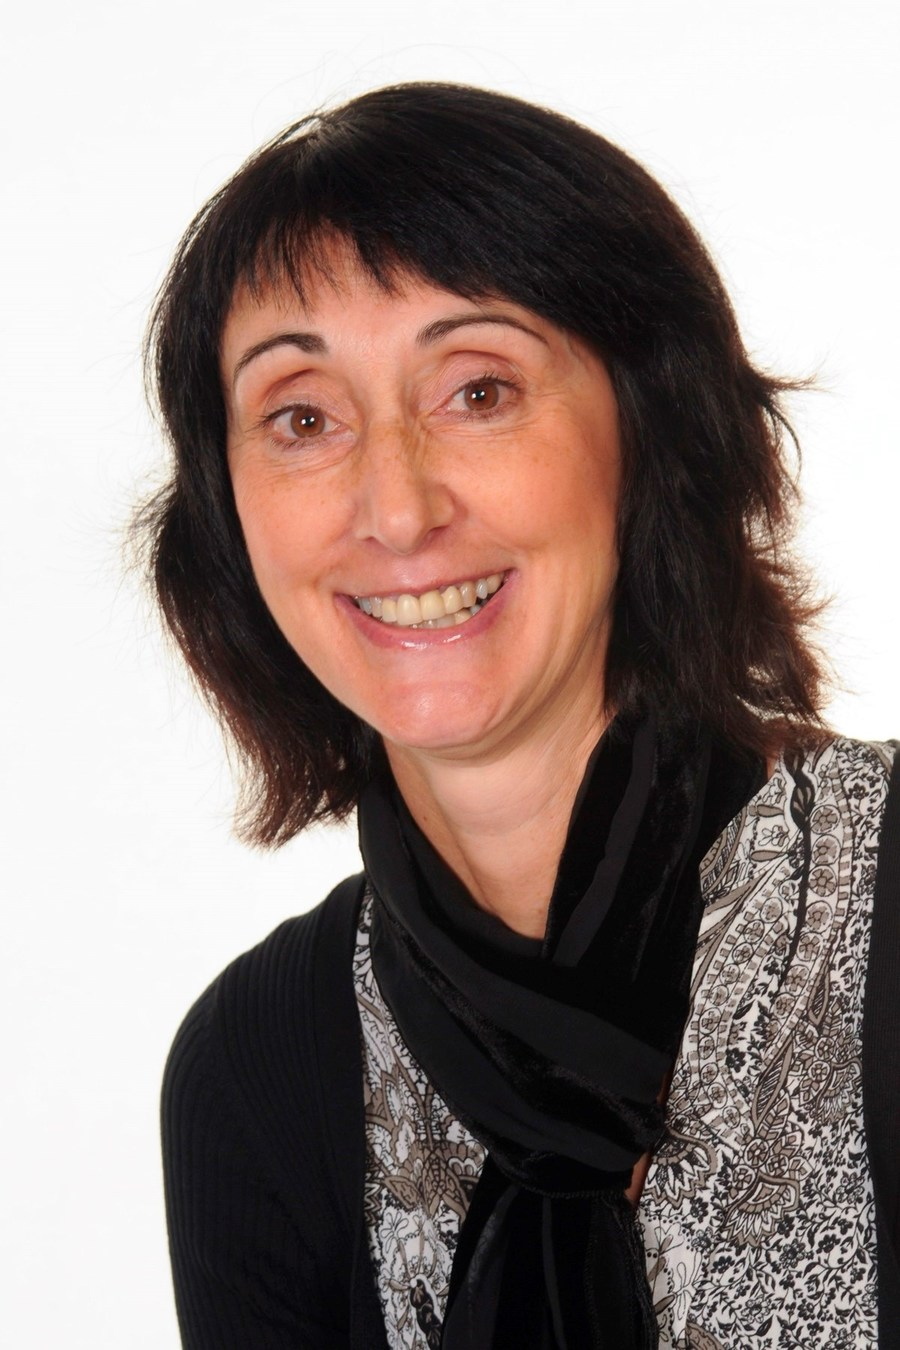 Anne Cook-Abbott NVQ3: Learning Assistant